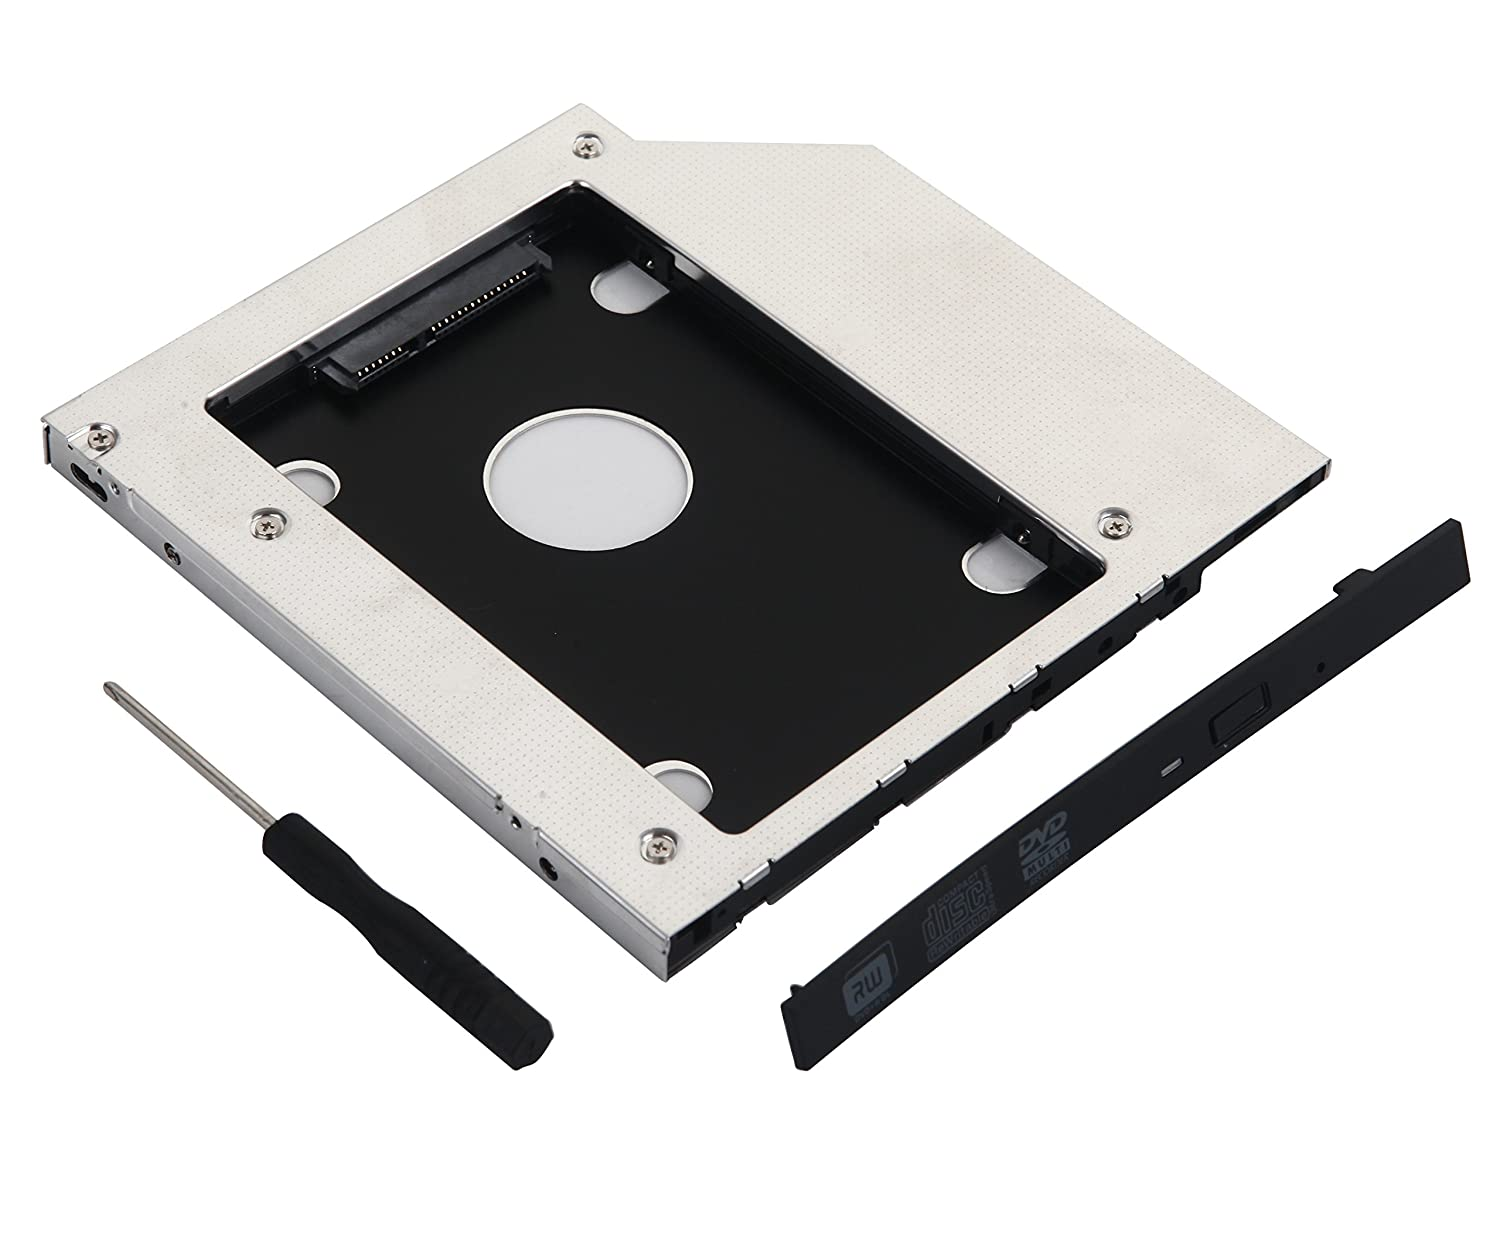 DeYoung 2 nd SATA HDD SSD Disco Duro Caddy Adaptador para Sony ...